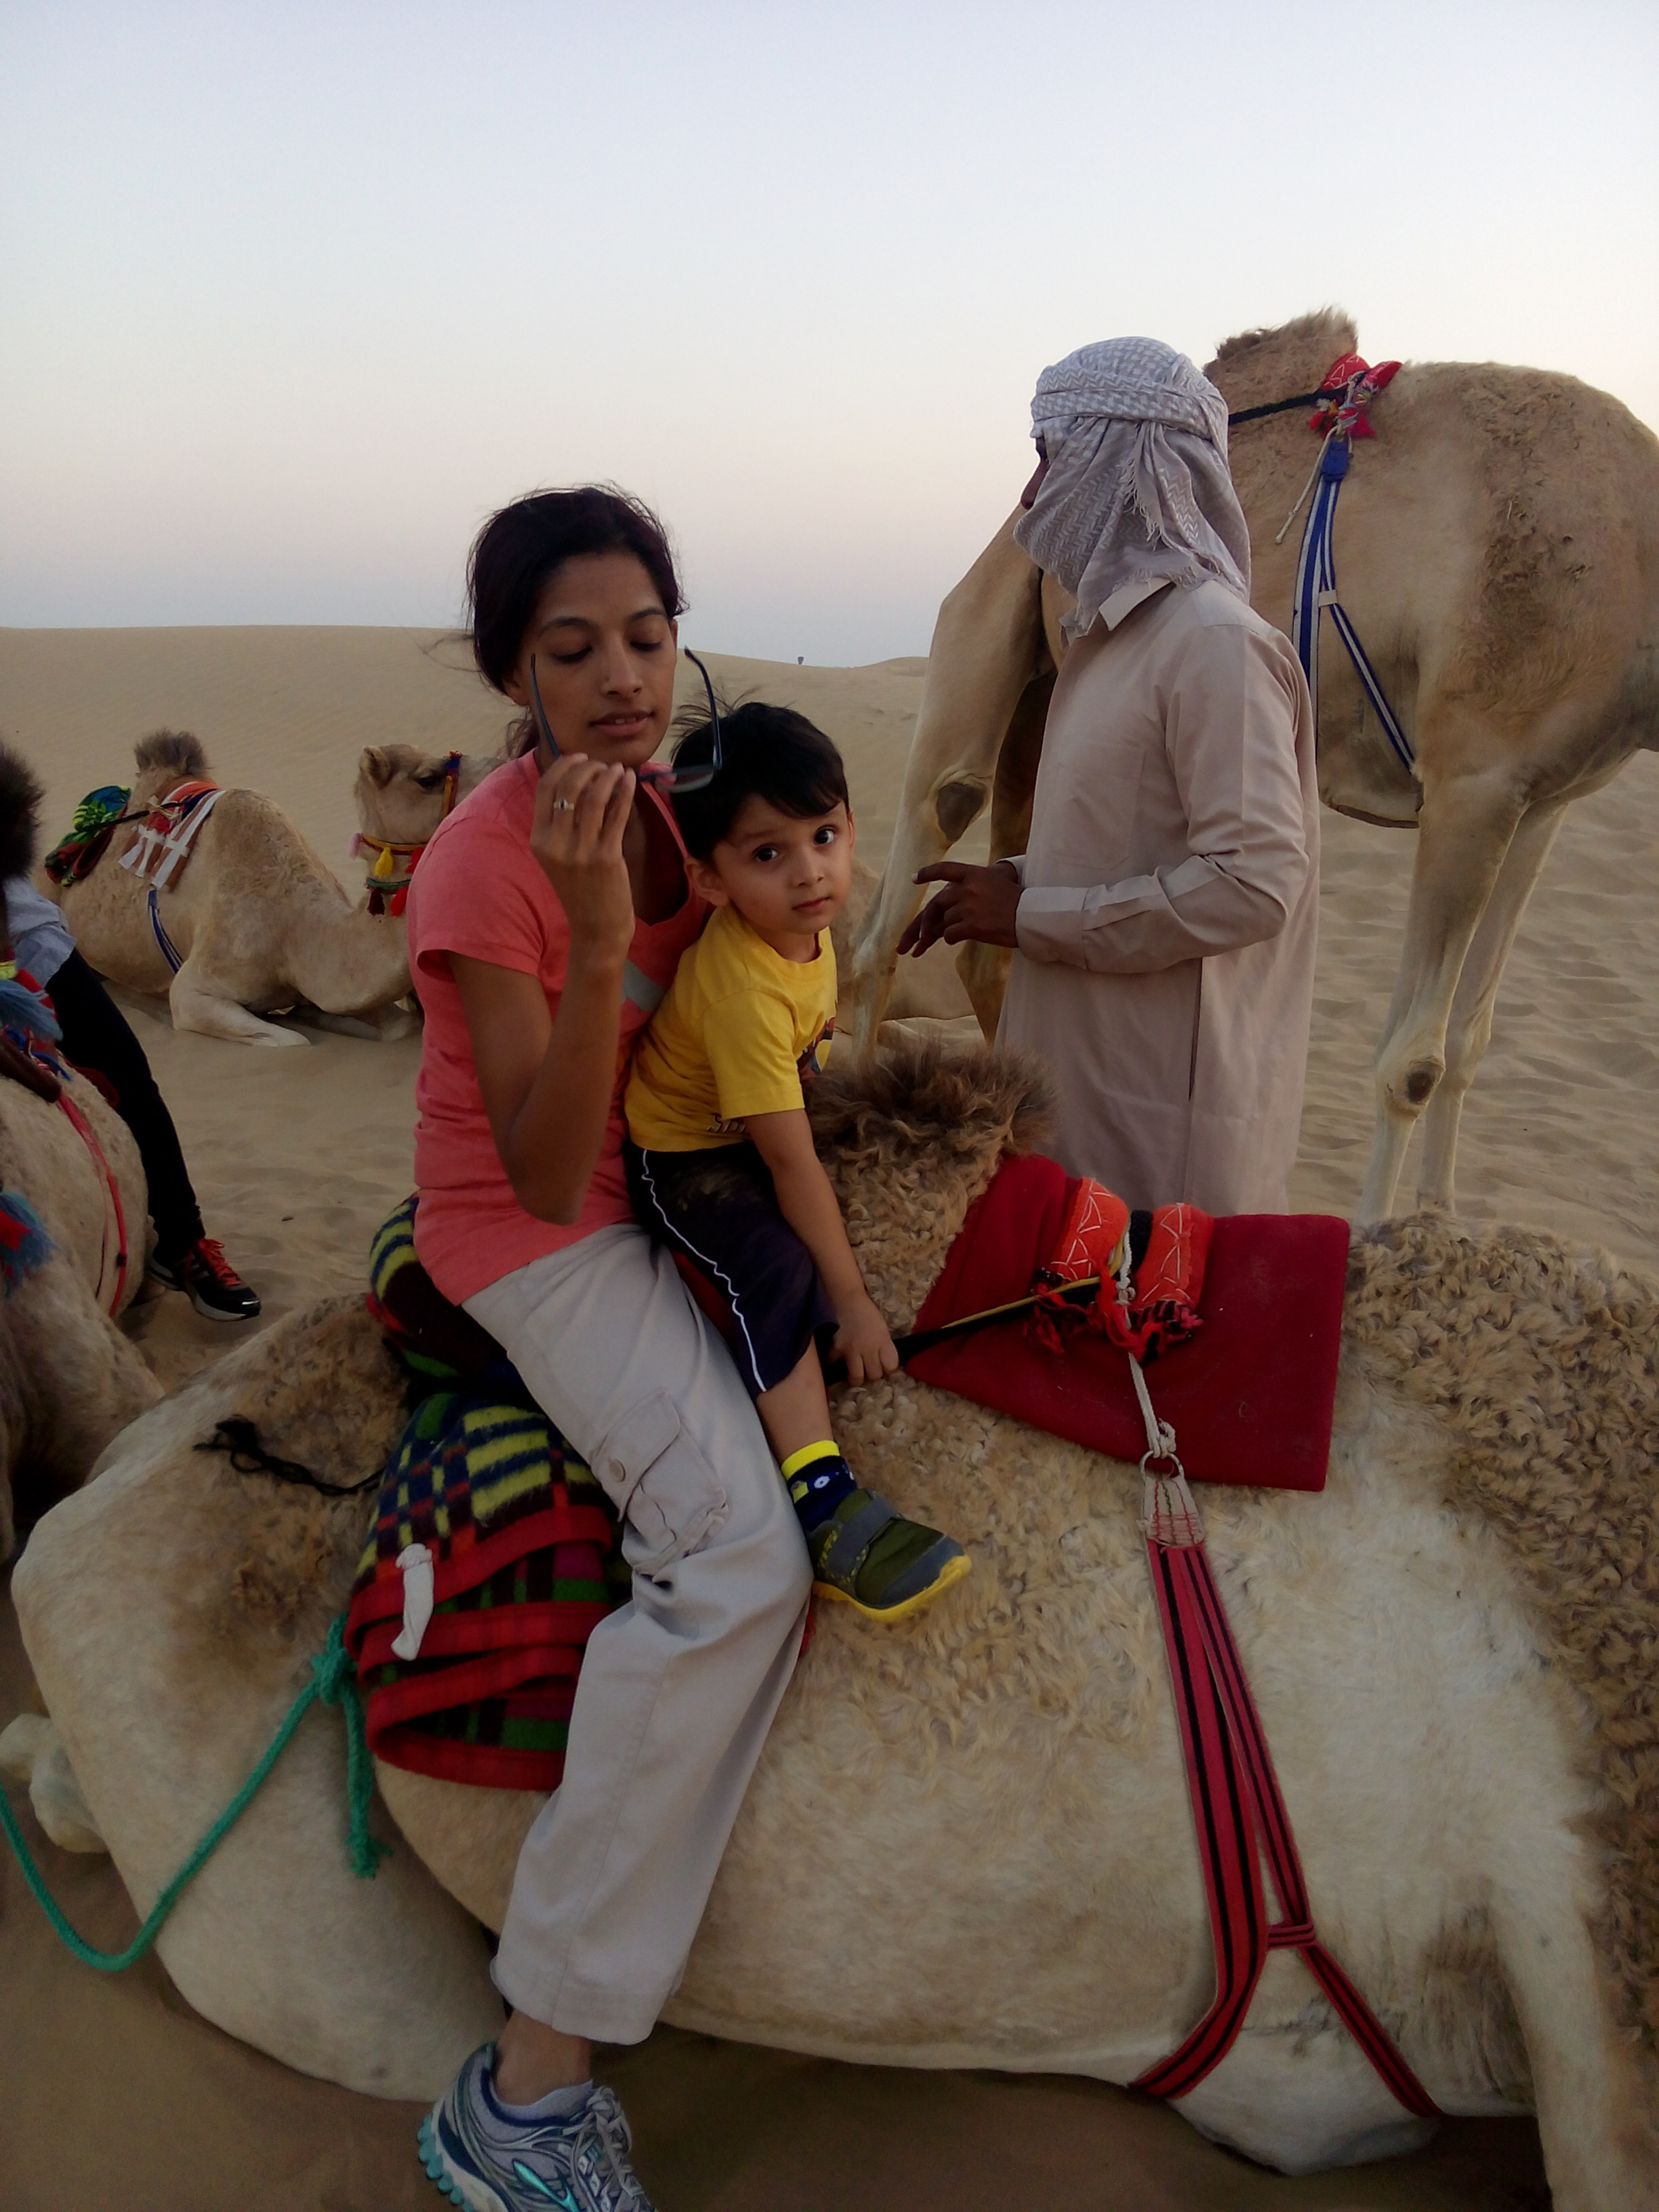 Arva and Yojit before the camel ride